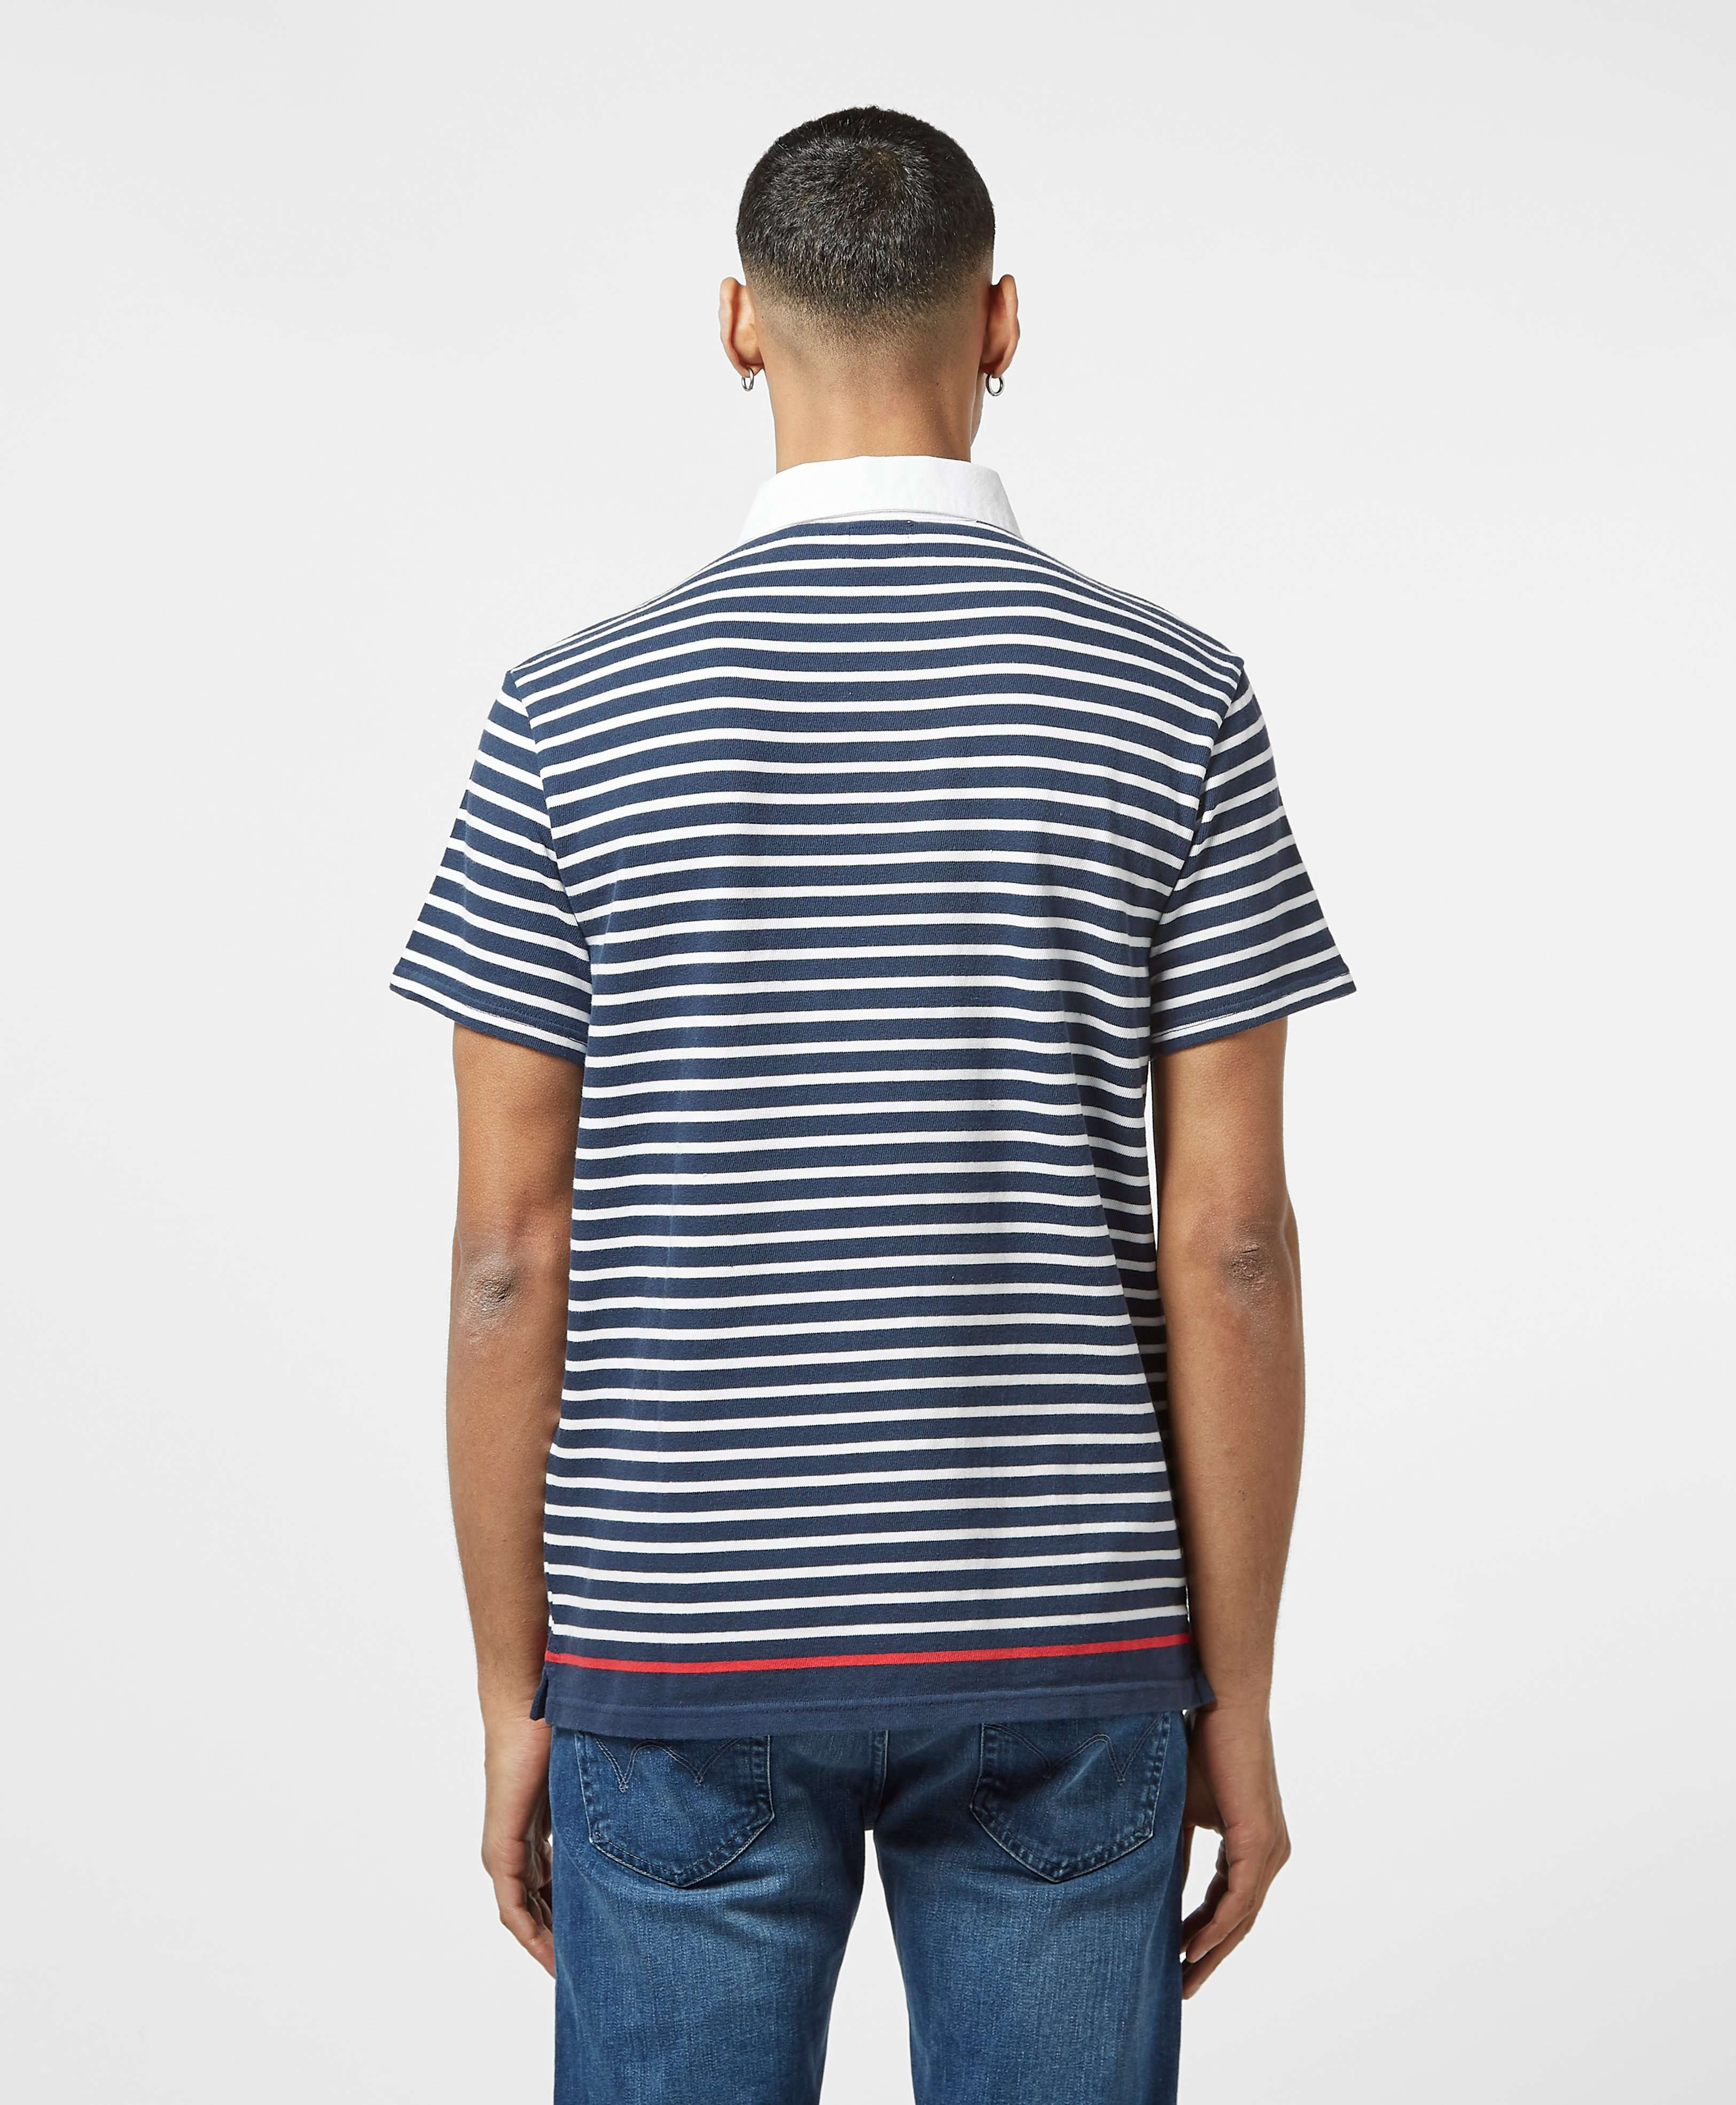 Levis Stripe Short Sleeve Rugby Polo Shirt - Exclusive